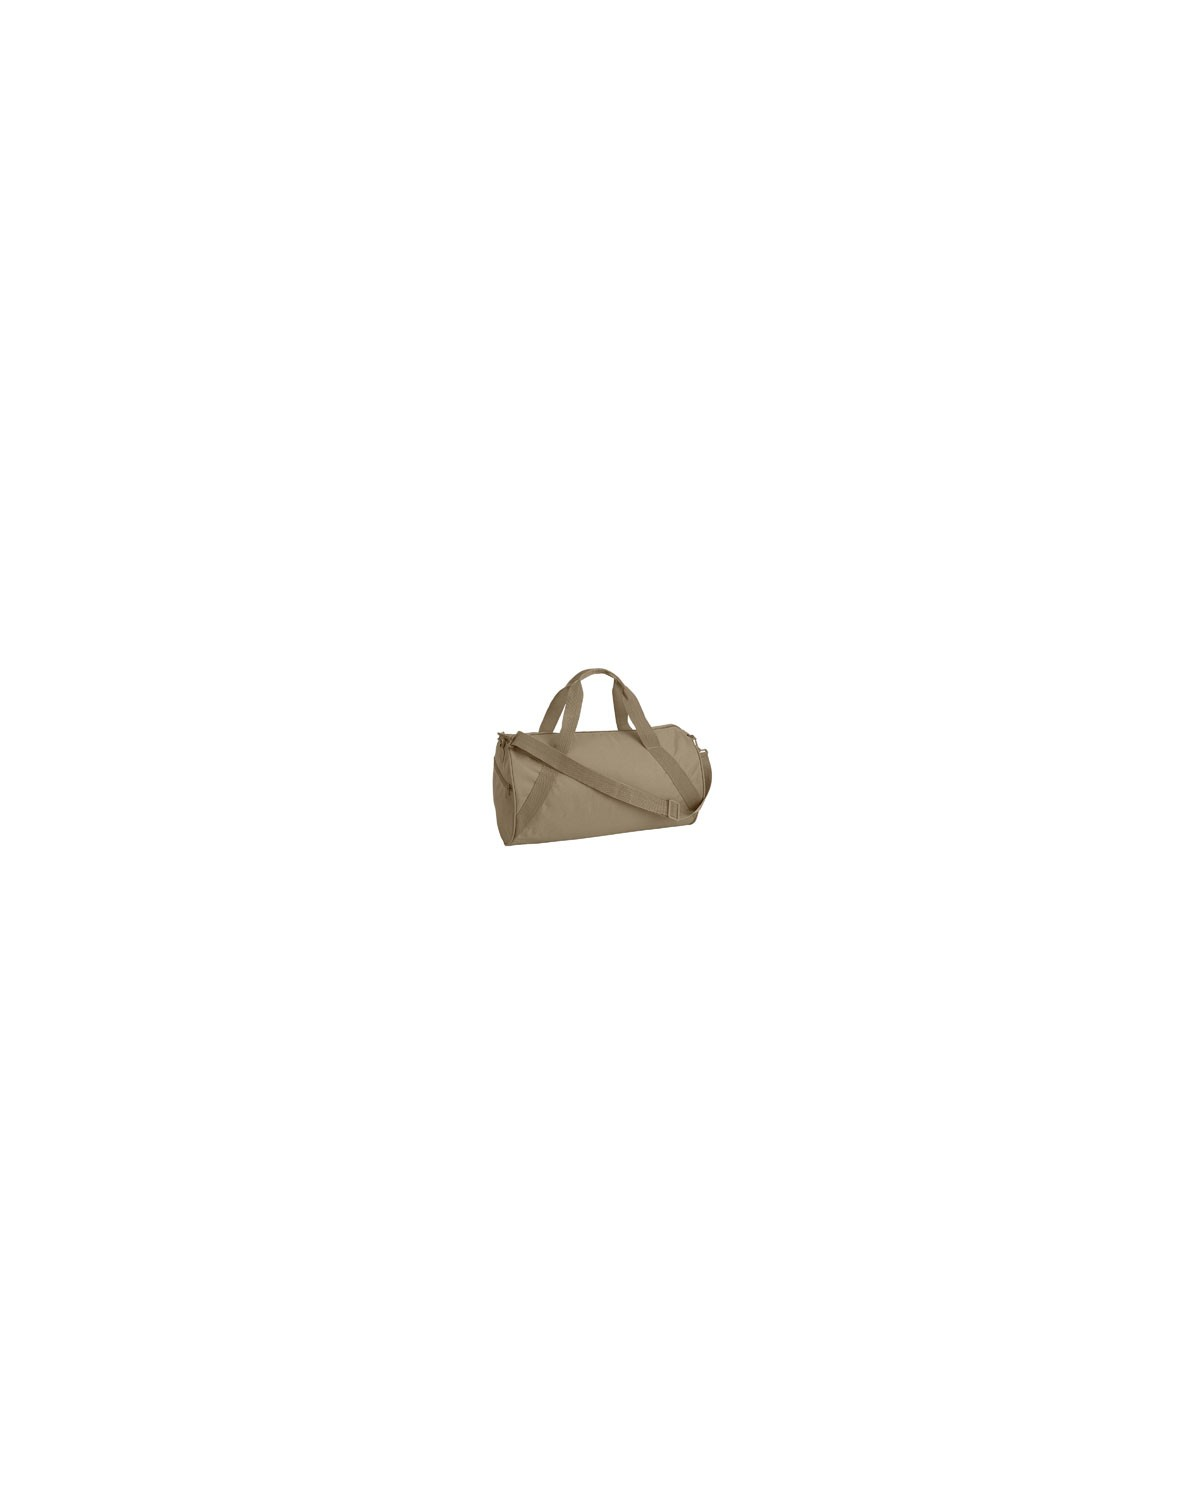 8805 Liberty Bags LIGHT TAN